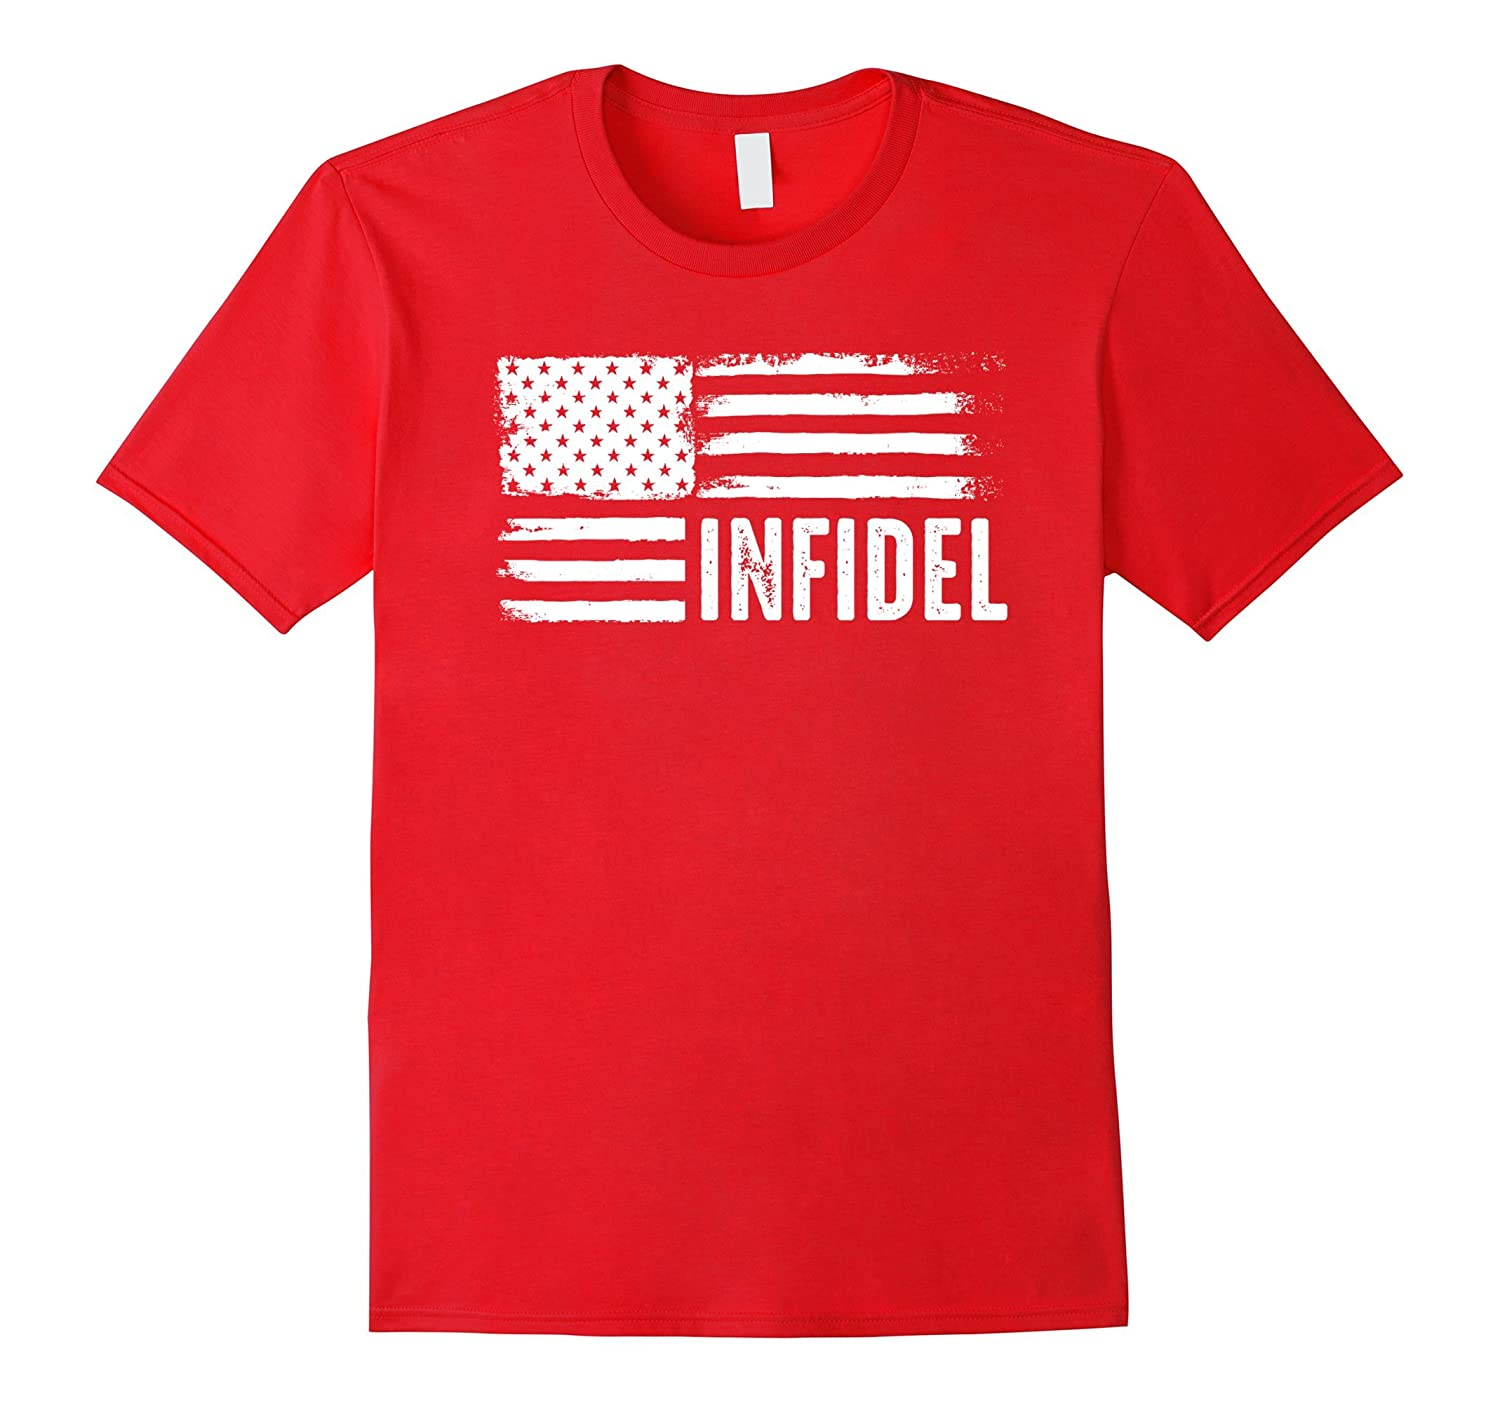 American Infidel Shirt us armed forces army Anti Terrorist